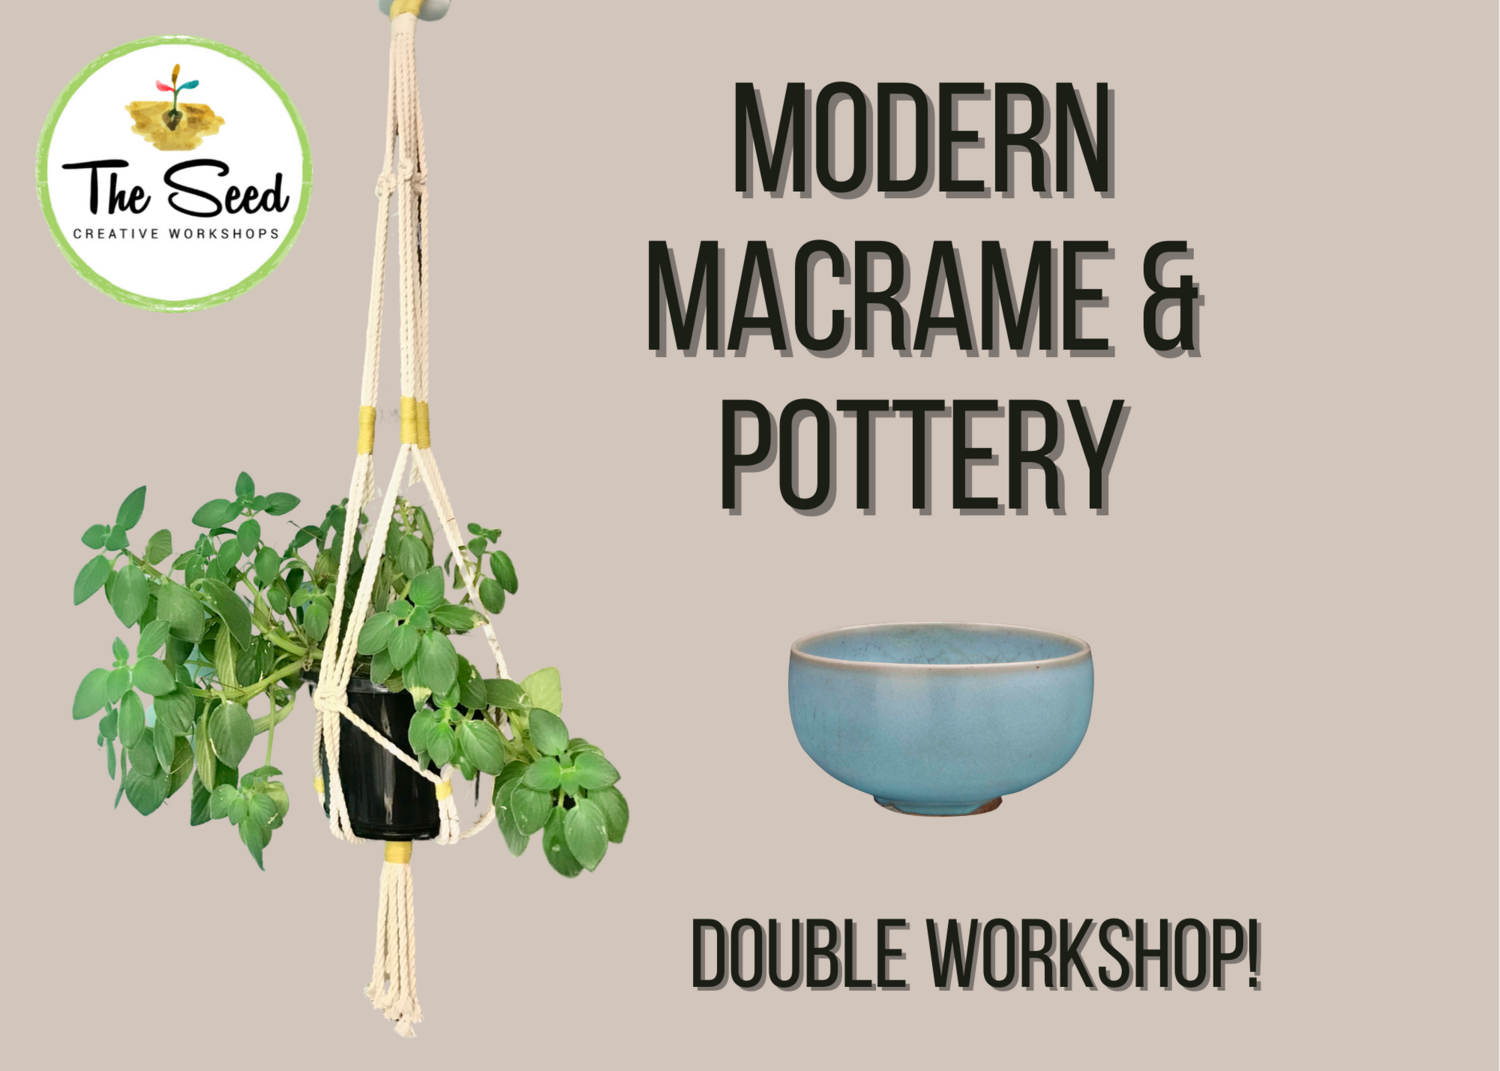 Modern Macrame & Pottery Double Workshop - Tuesday 24 Nov + Tues 1 Dec, 6.30-9pm